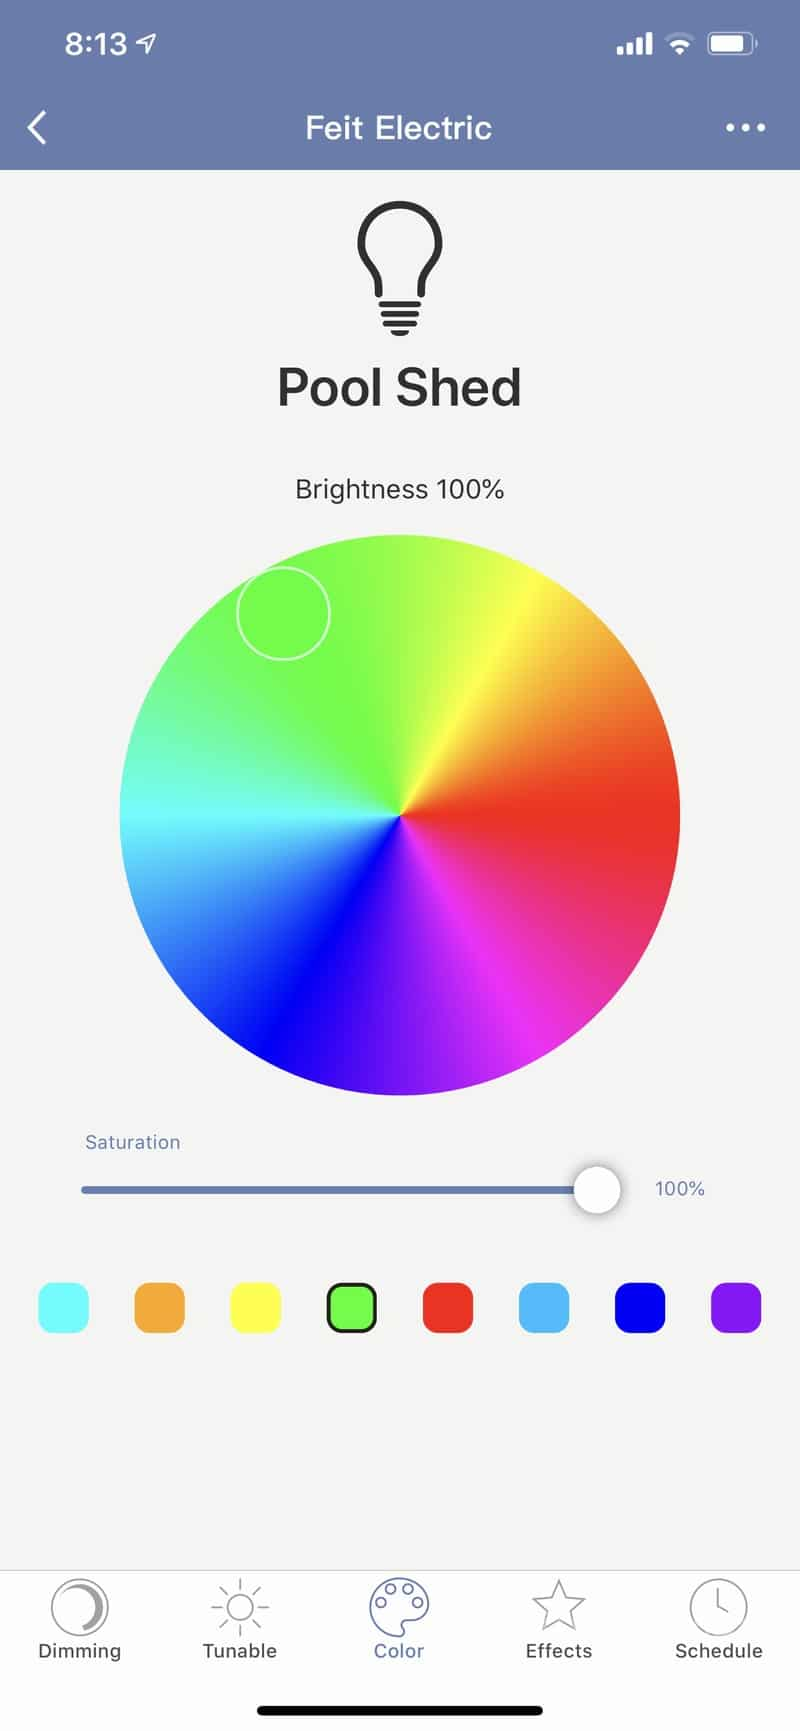 HighTechDad reviews Feit smart, WiFi floodlight bulbs - color wheel